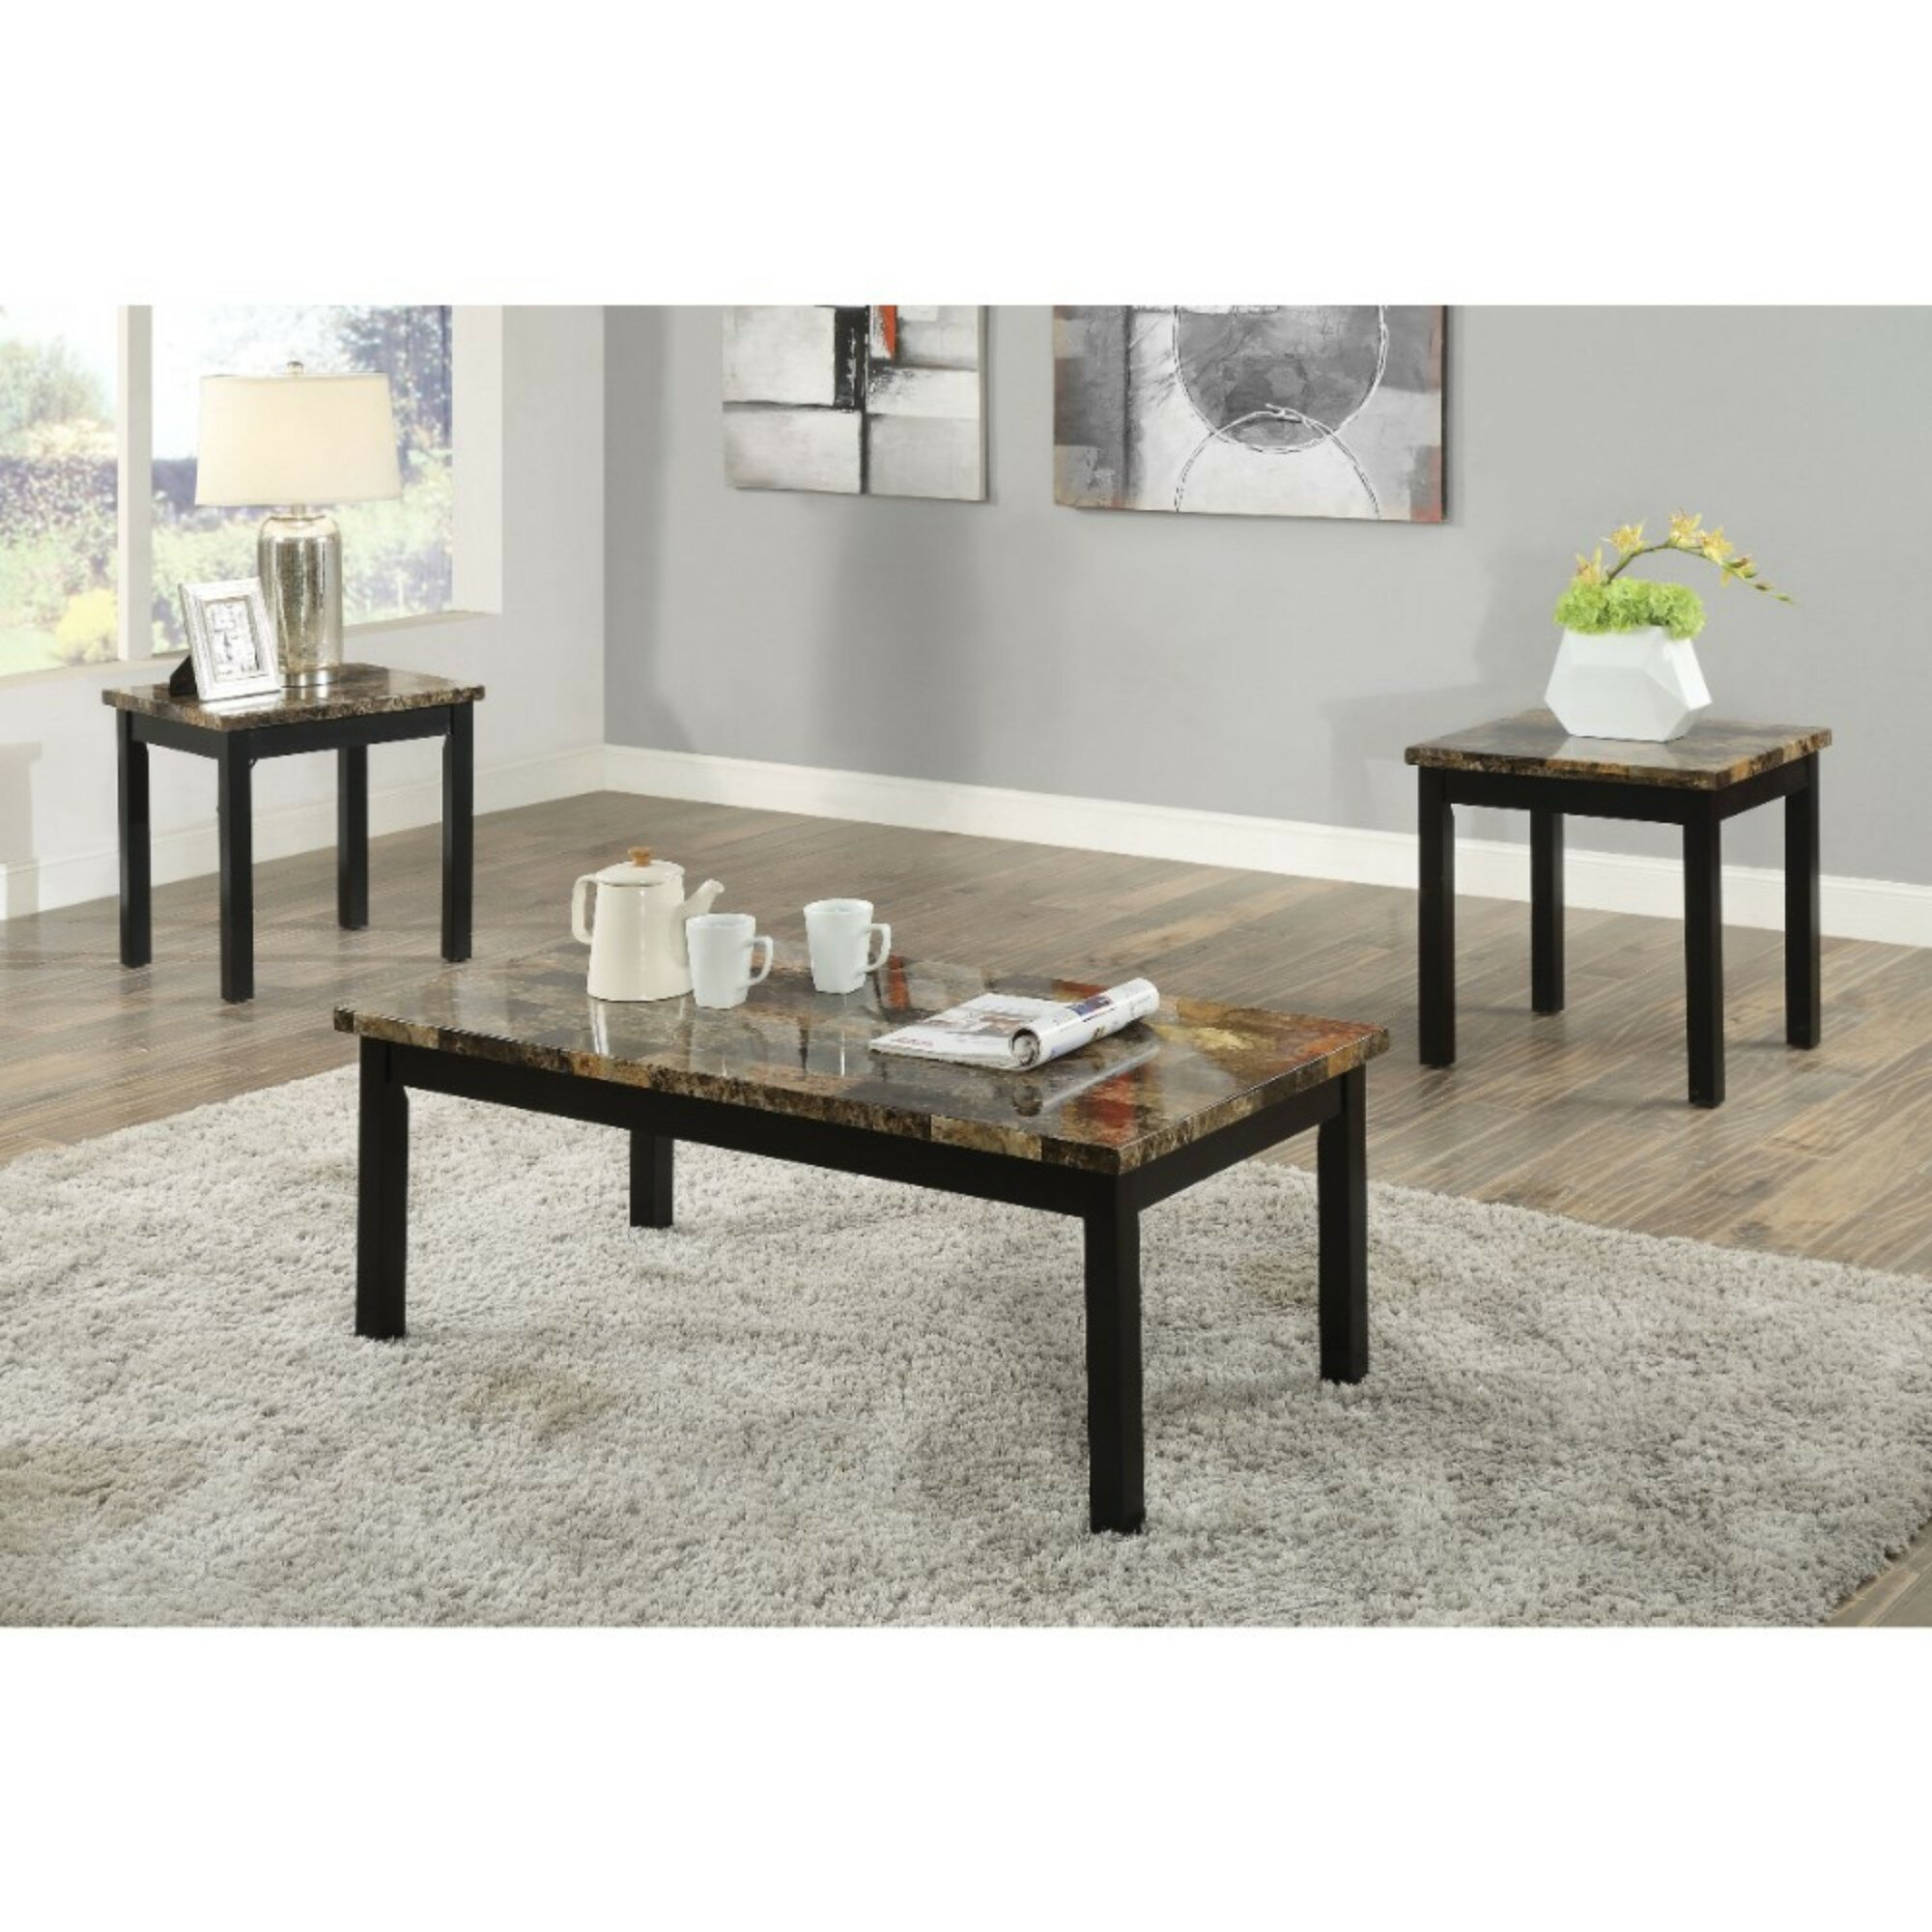 Awesome Screven Transitional Wood And Faux Marble 3 Piece Coffee Table Set Caraccident5 Cool Chair Designs And Ideas Caraccident5Info